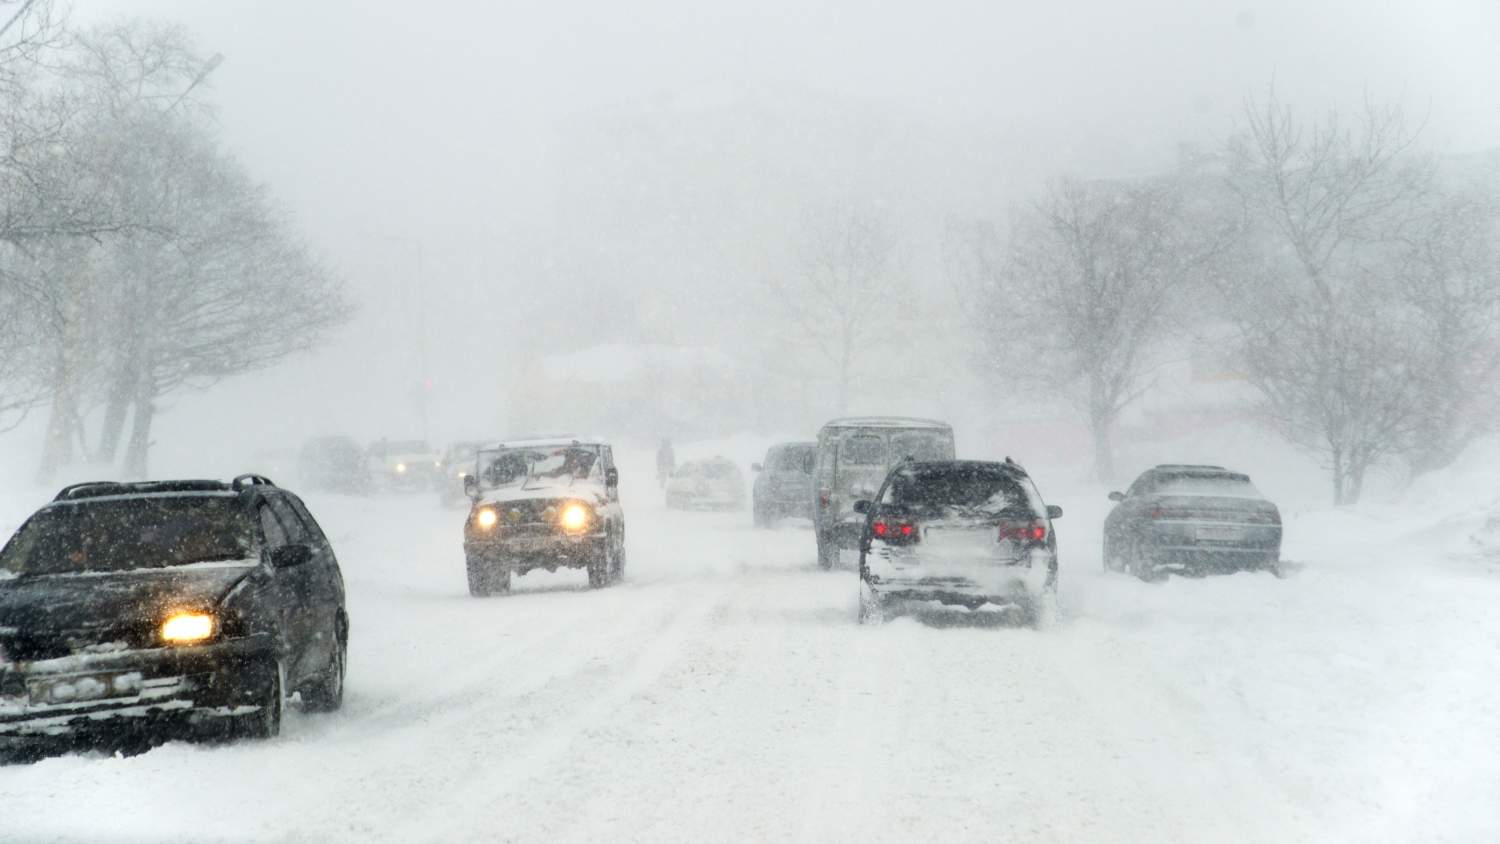 Snowstorm on the highway